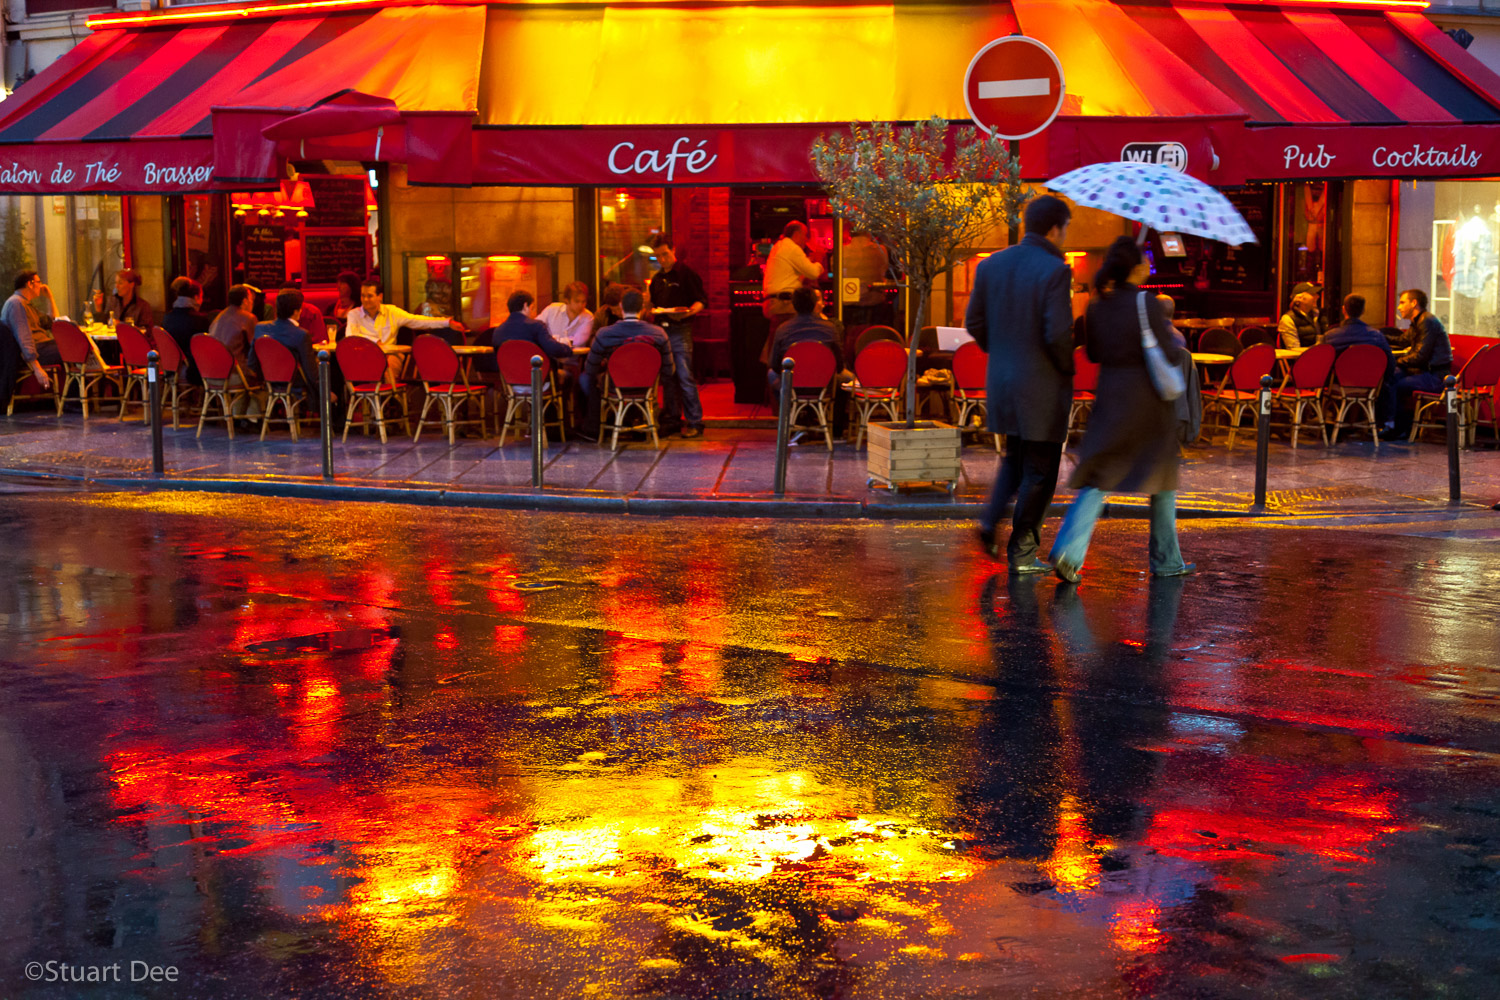 Cafe scene with wet streets an night, Paris, France